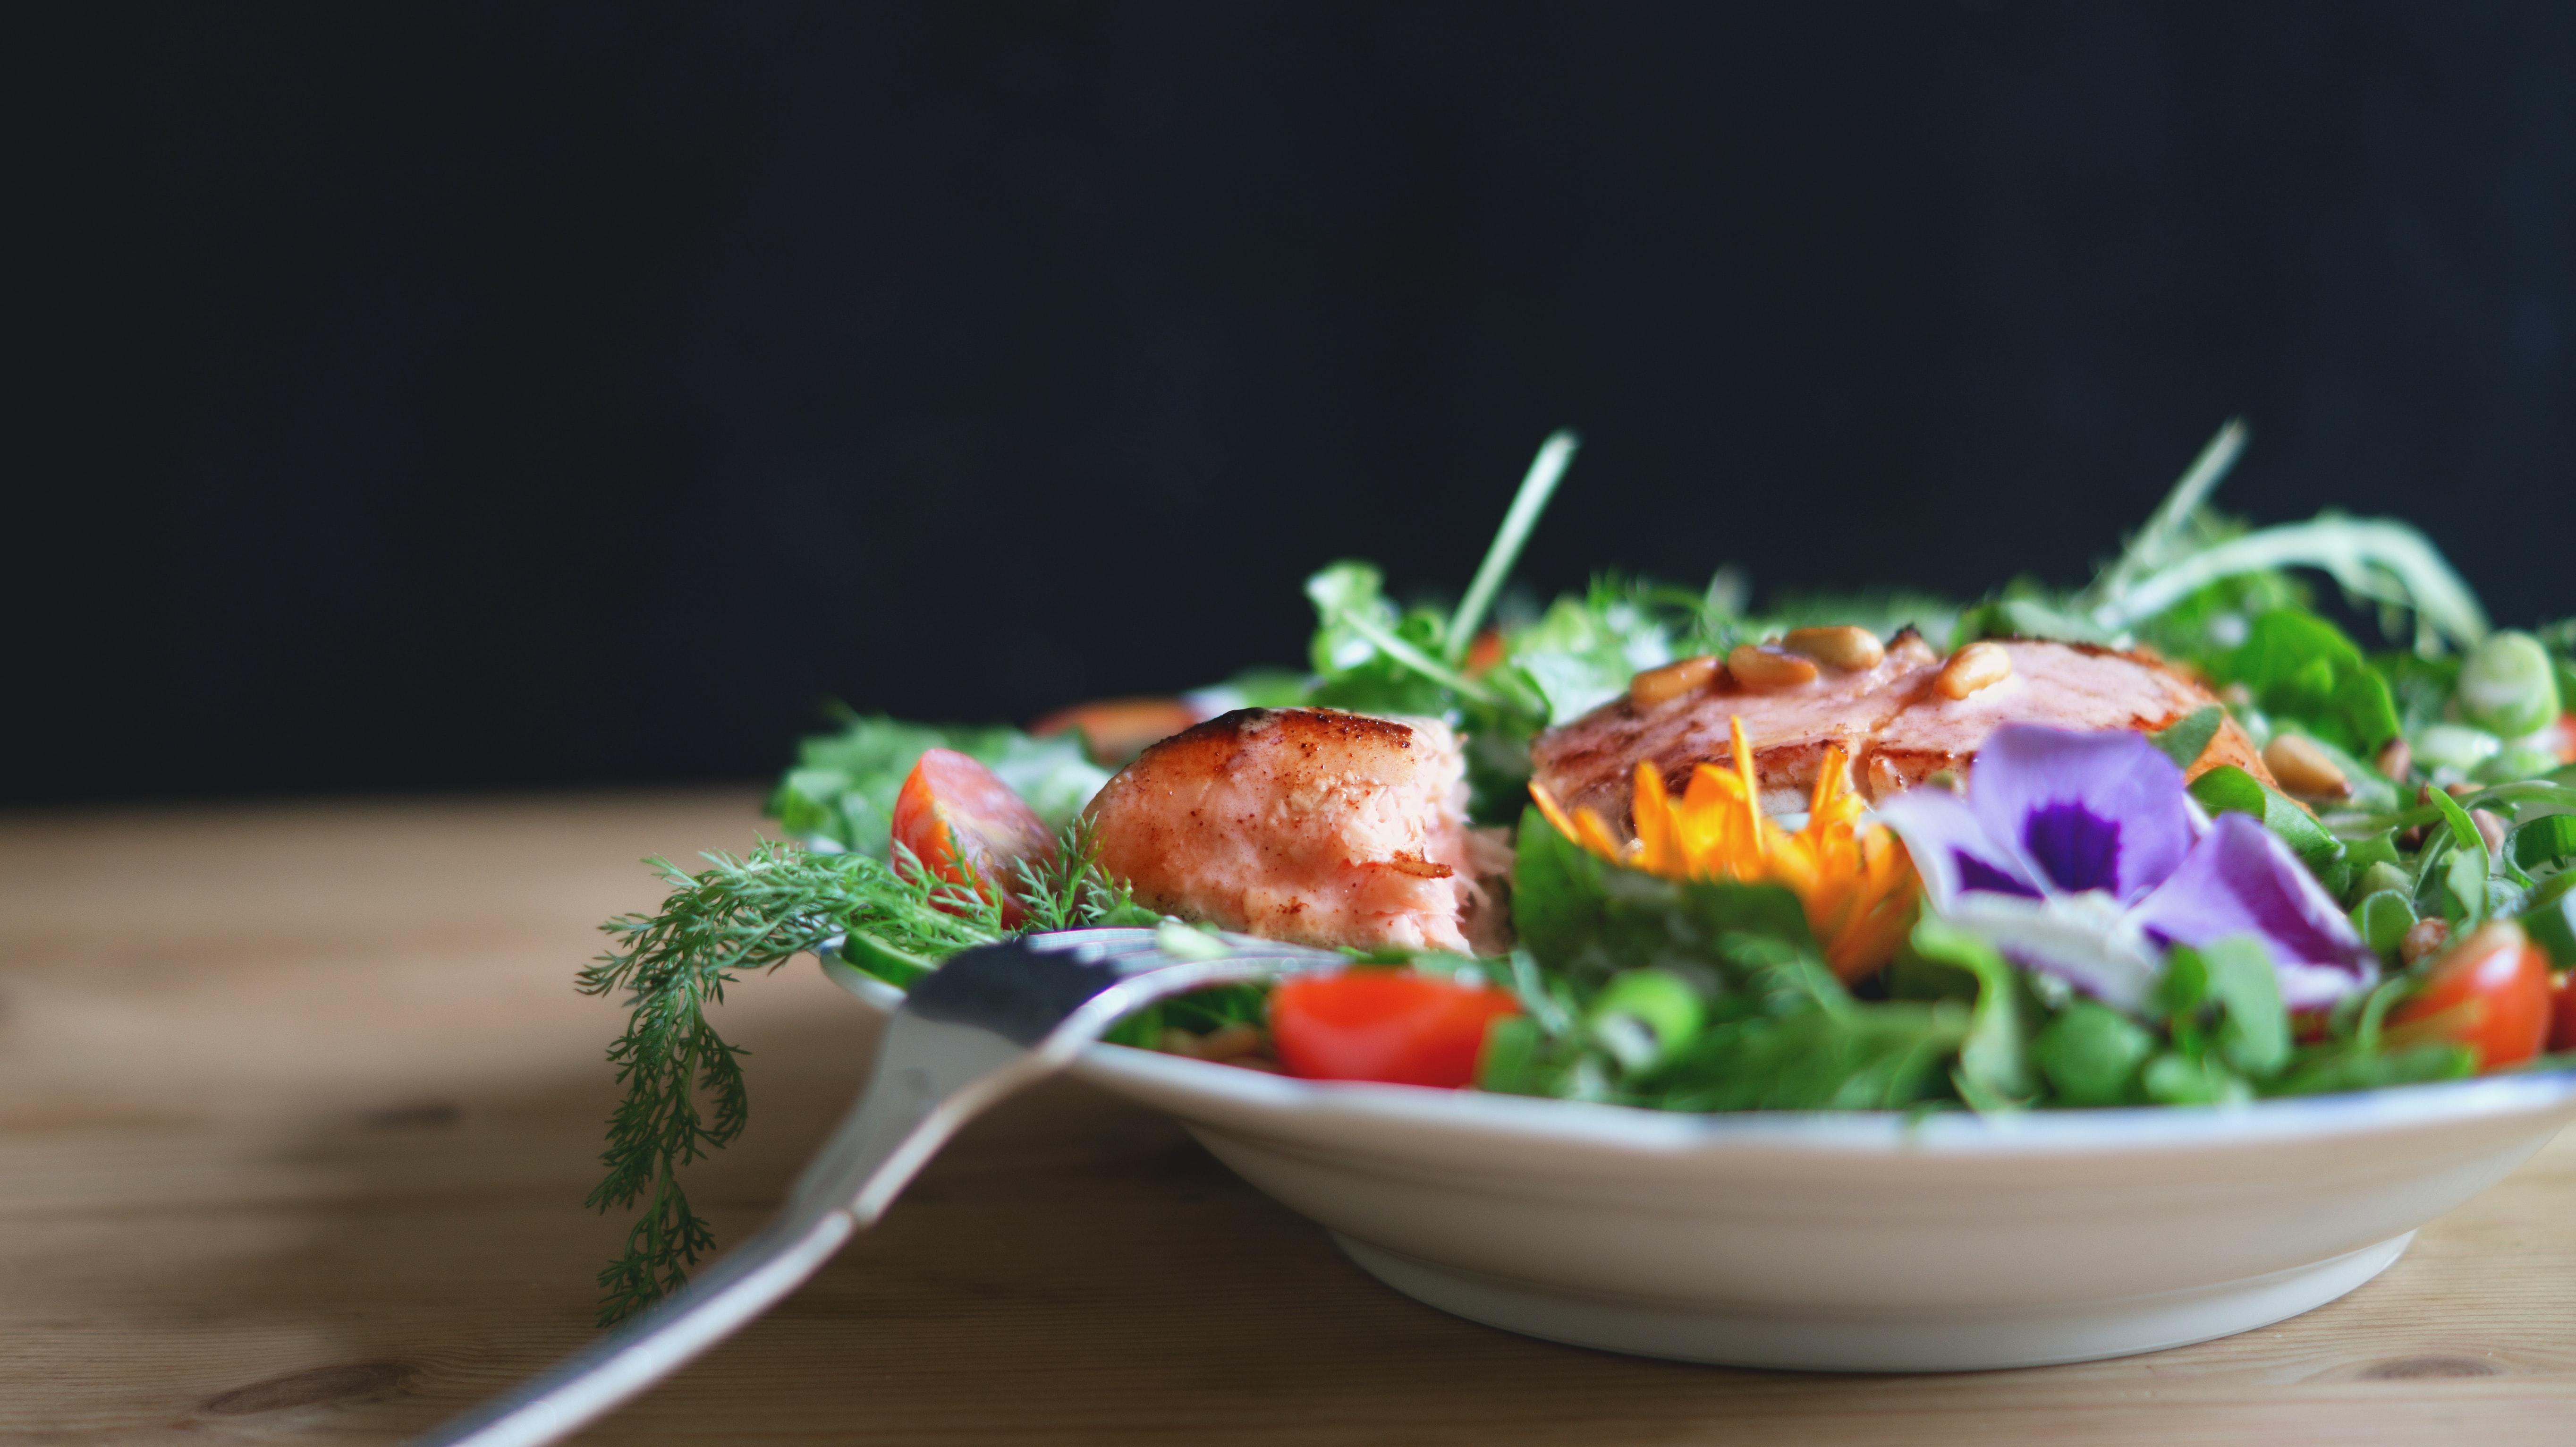 A salad with salmon in a white dish